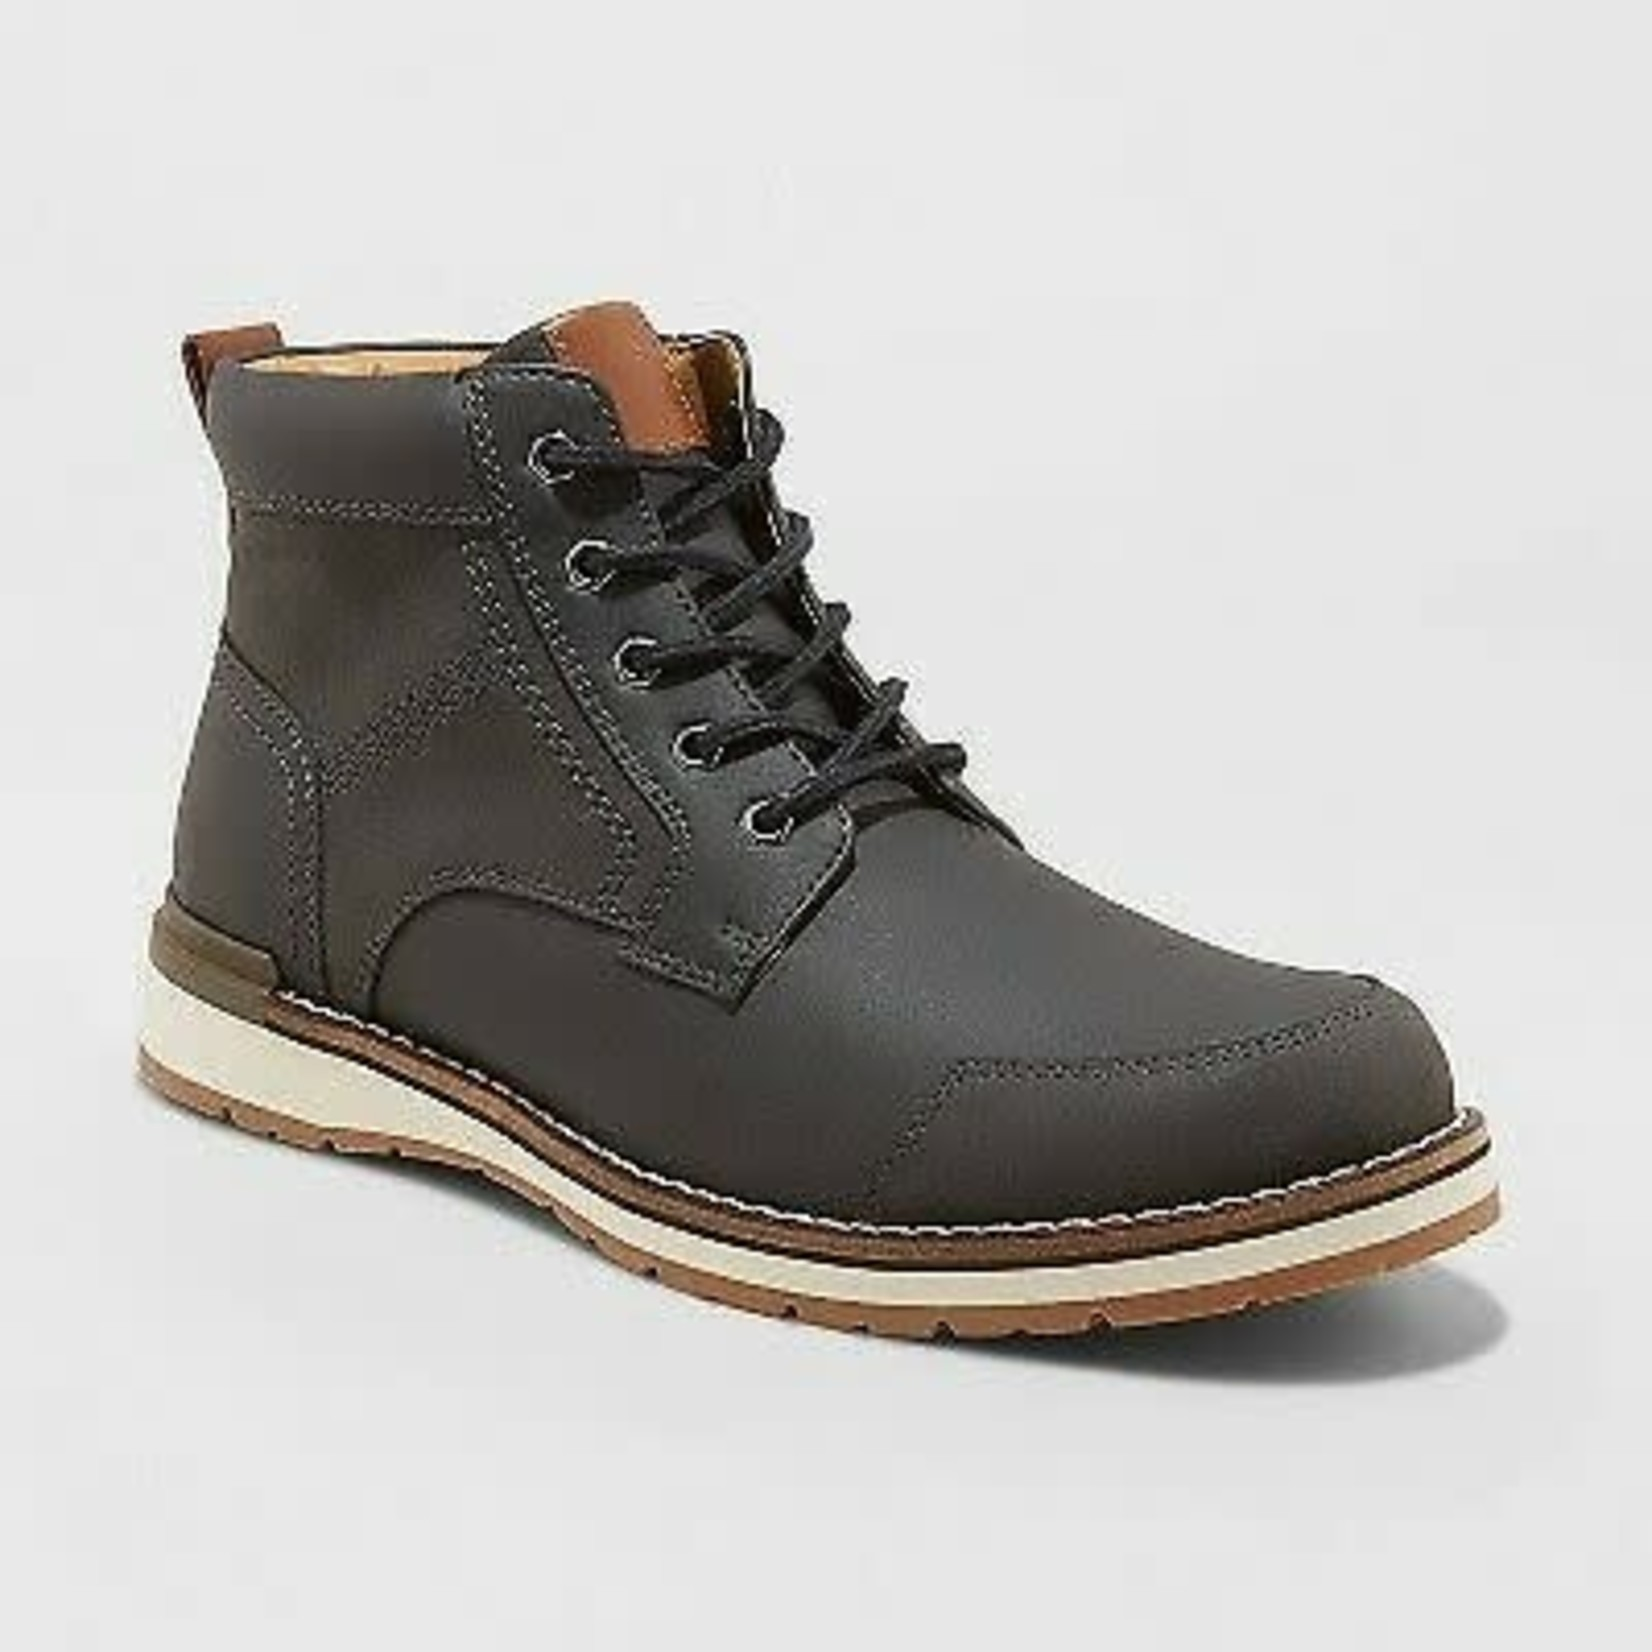 Men's Gaven Lace-Up Ankle Boots - Goodfellow Co - 12